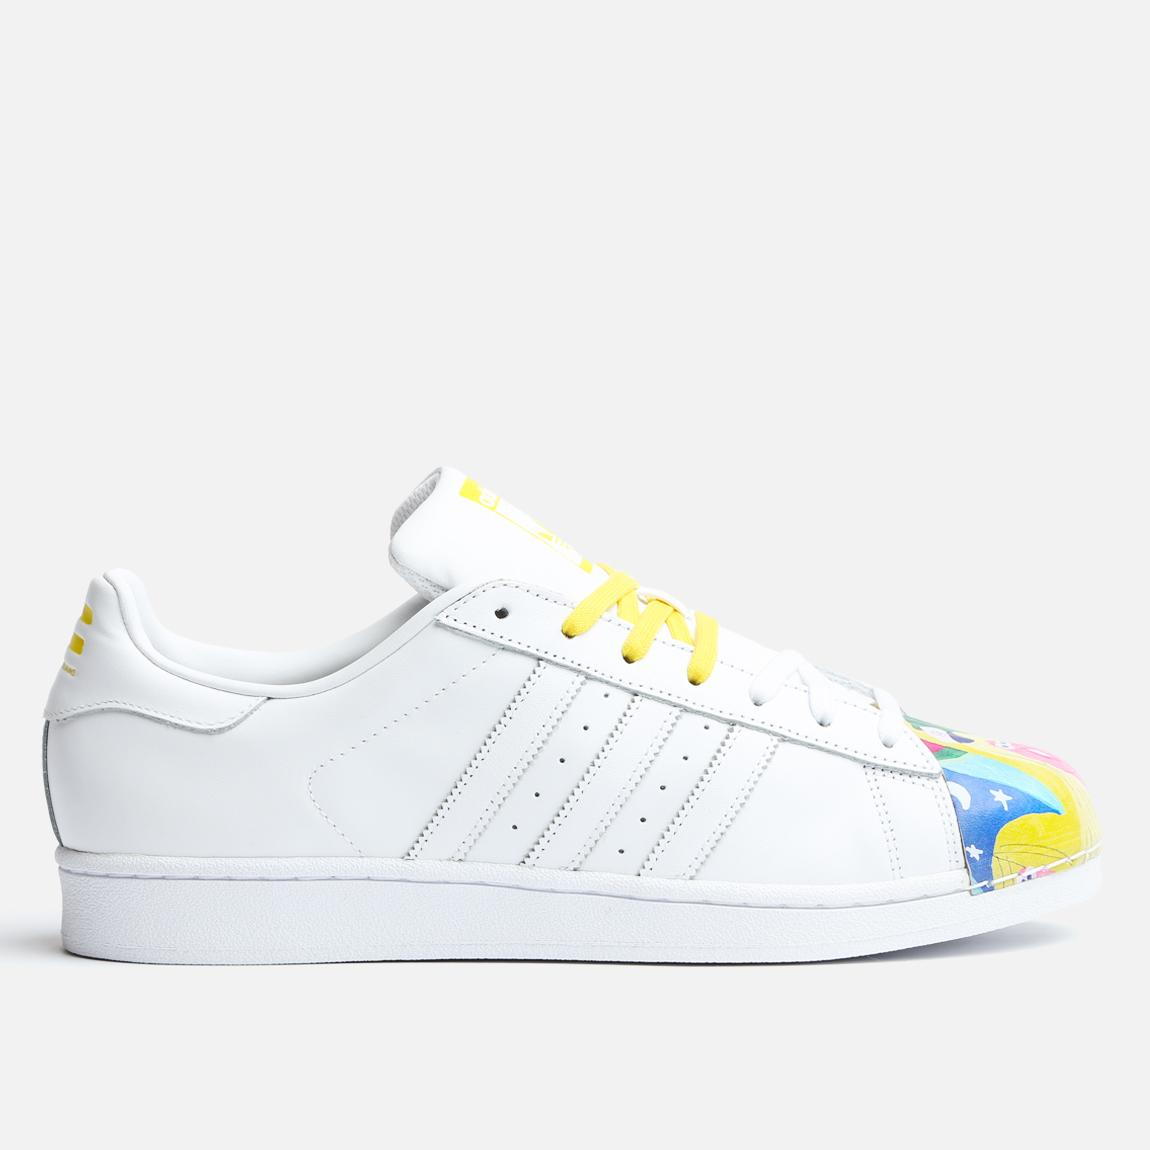 premium selection 0d39a 8ea82 Look what I found on Superbalist.com